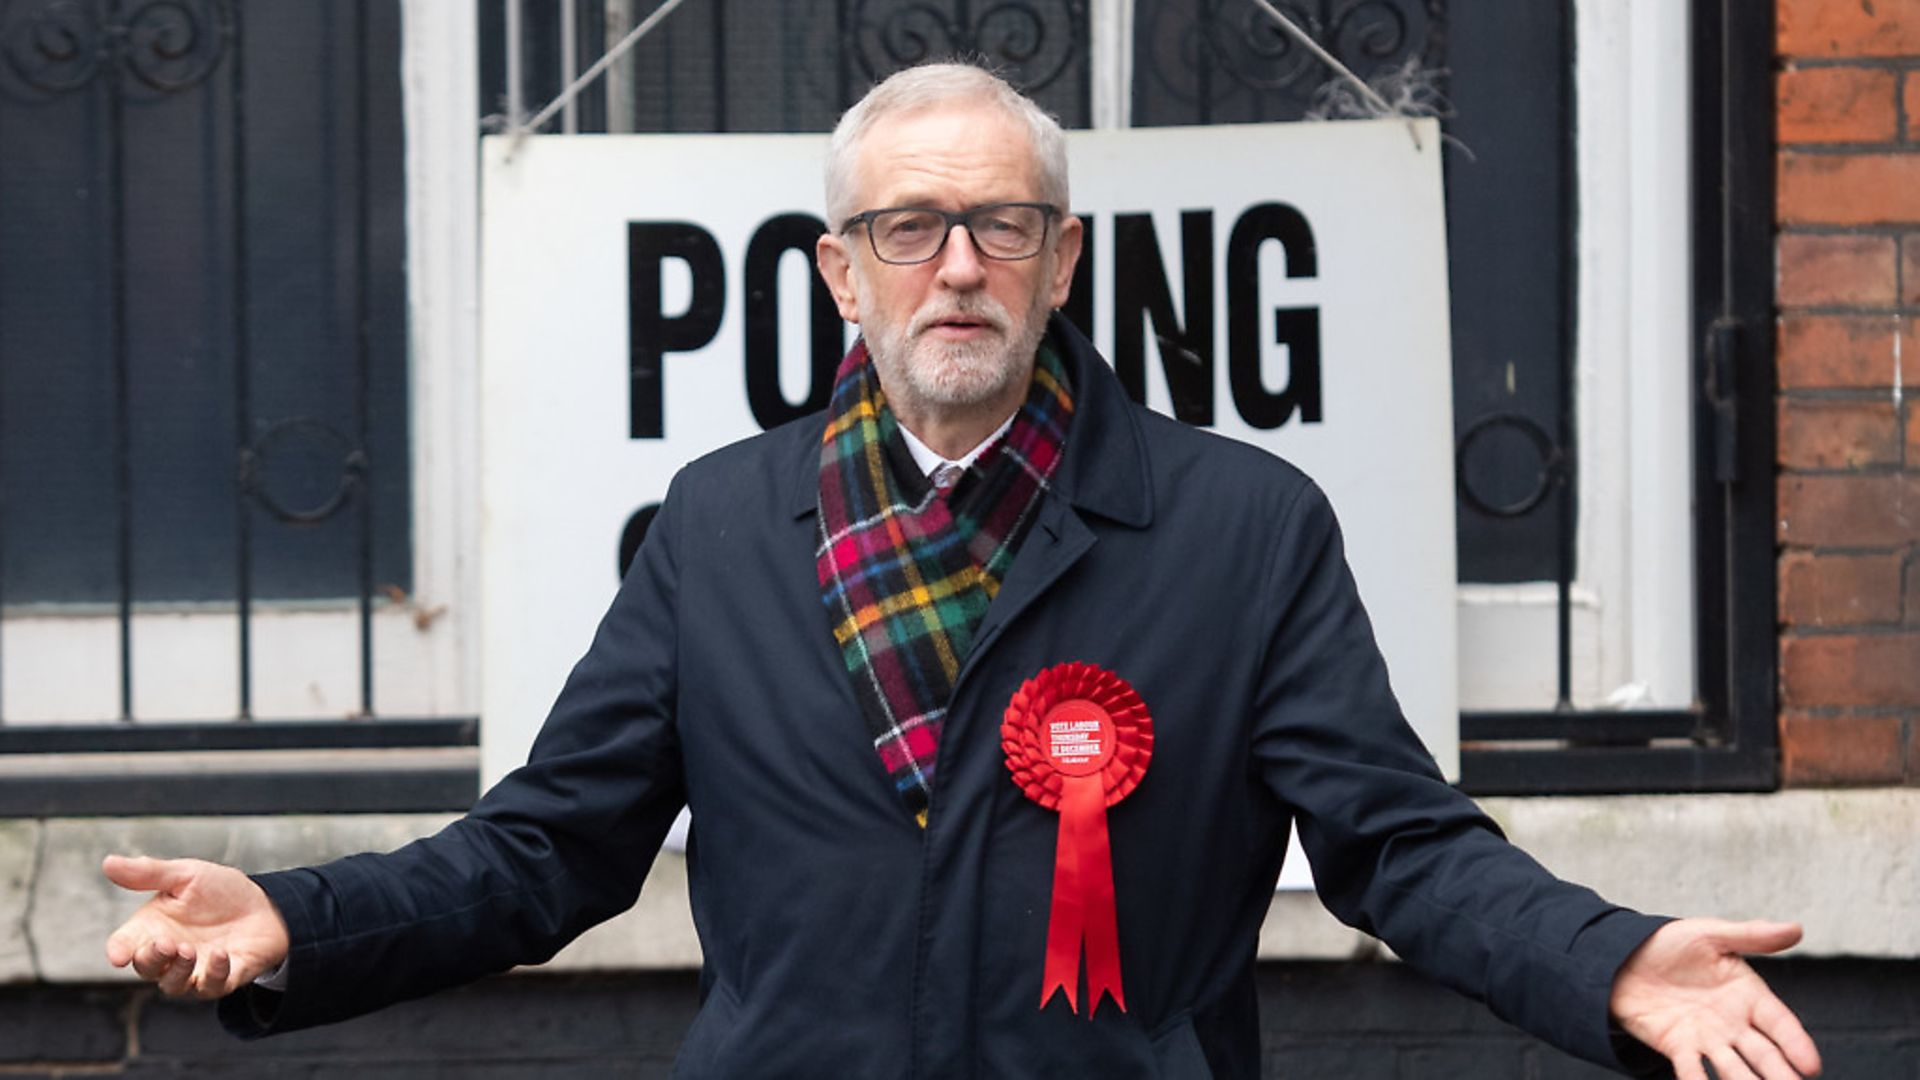 Labour leader Jeremy Corbyn after casting his vote in the 2019 General Election. Picture: Joe Giddens/ PA Wire - Credit: PA Wire/PA Images